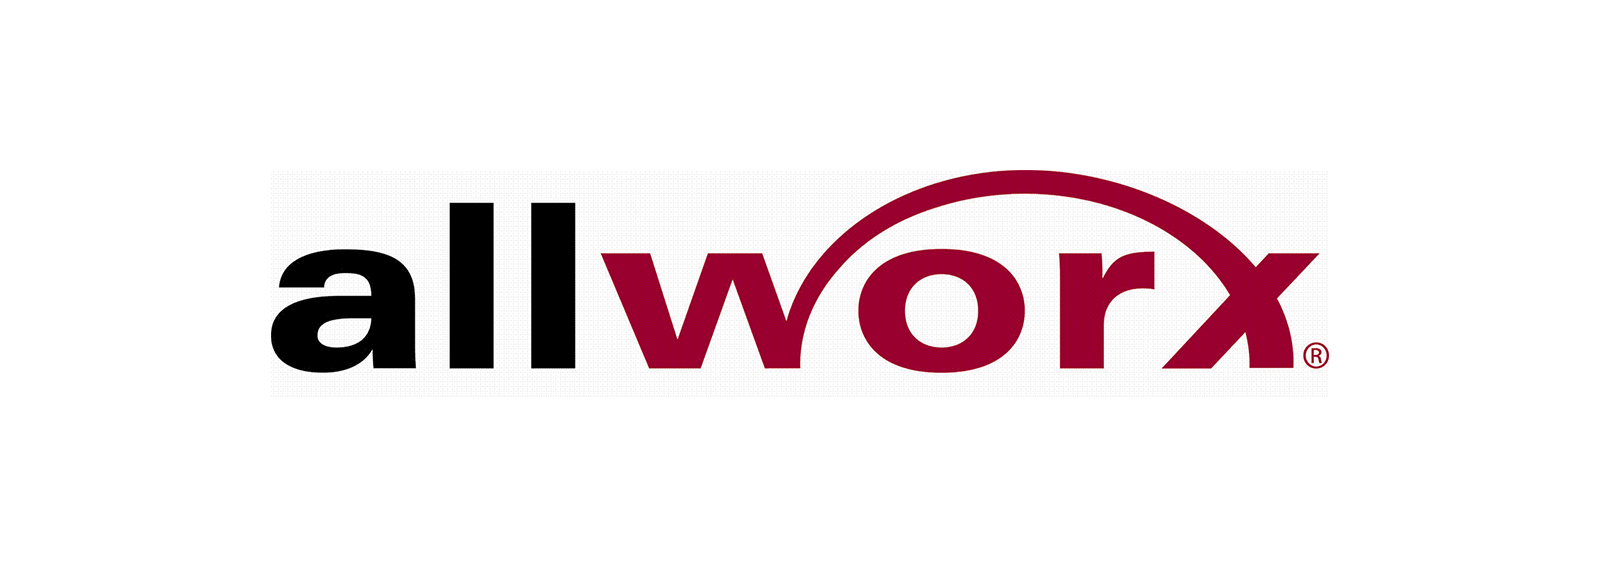 0_1_0000s_0065_Allworx.png